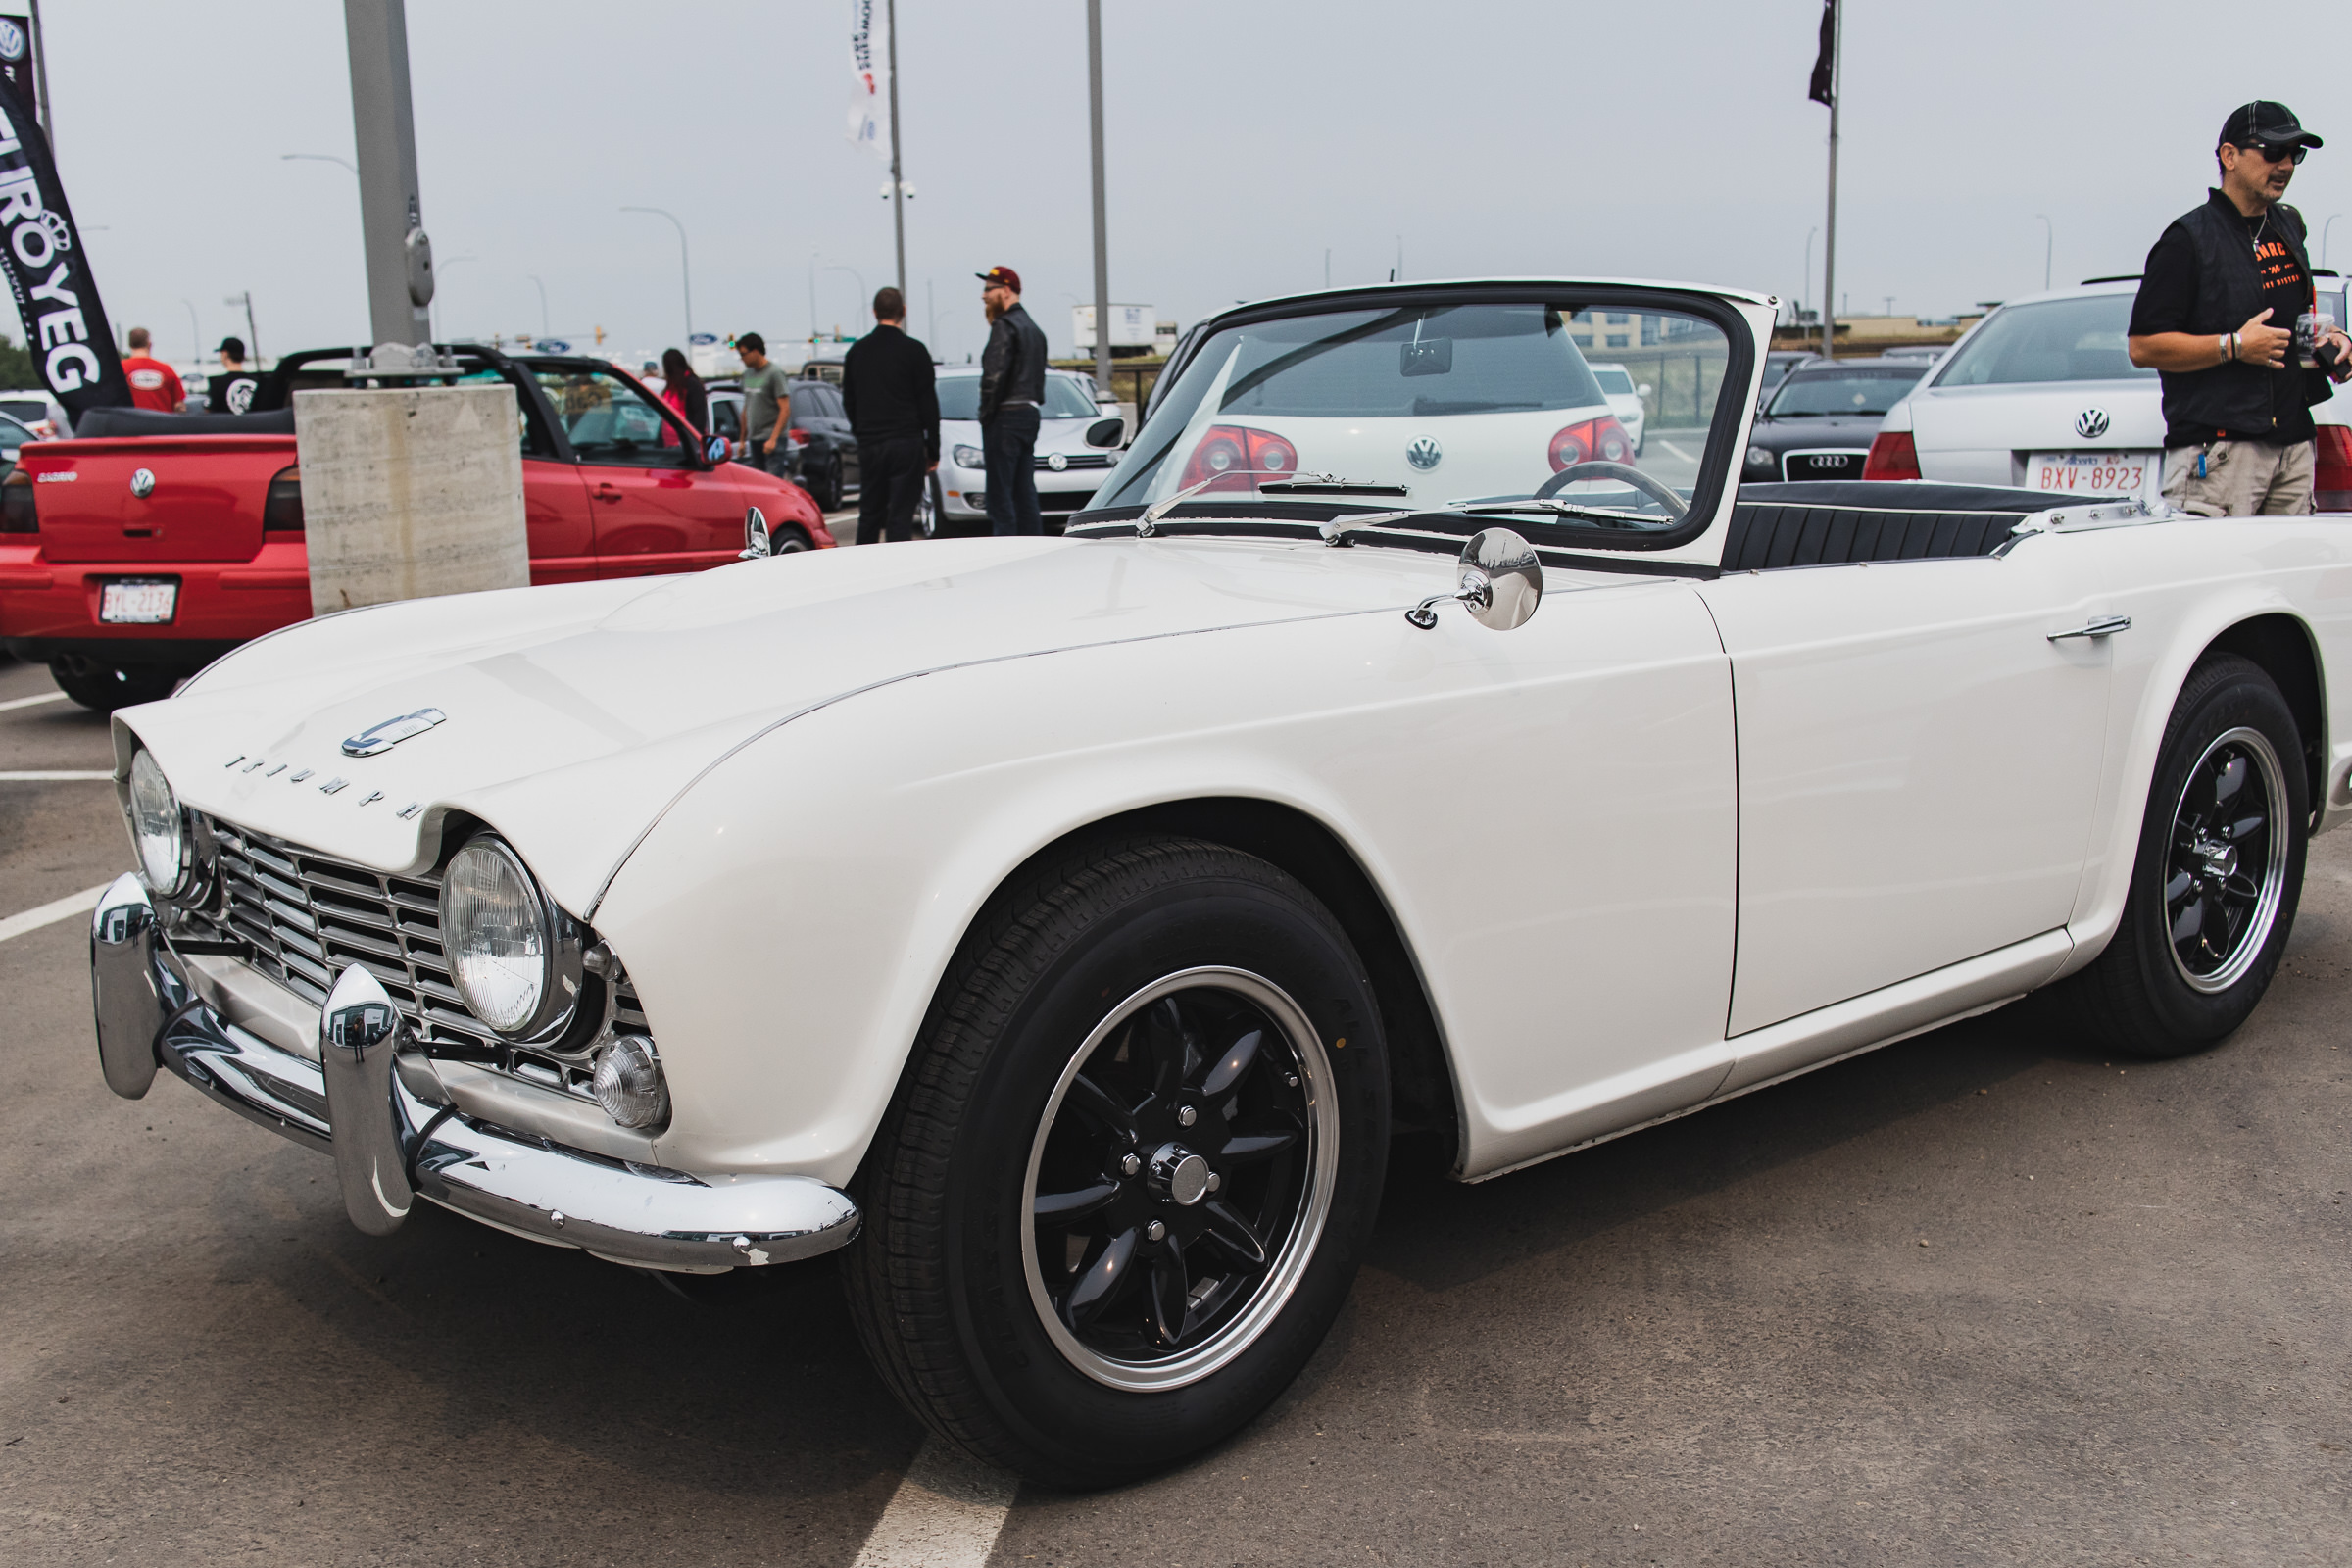 1965 Triumph TR4. Elegant, stylish, and can win a car limbo contest like a champ.